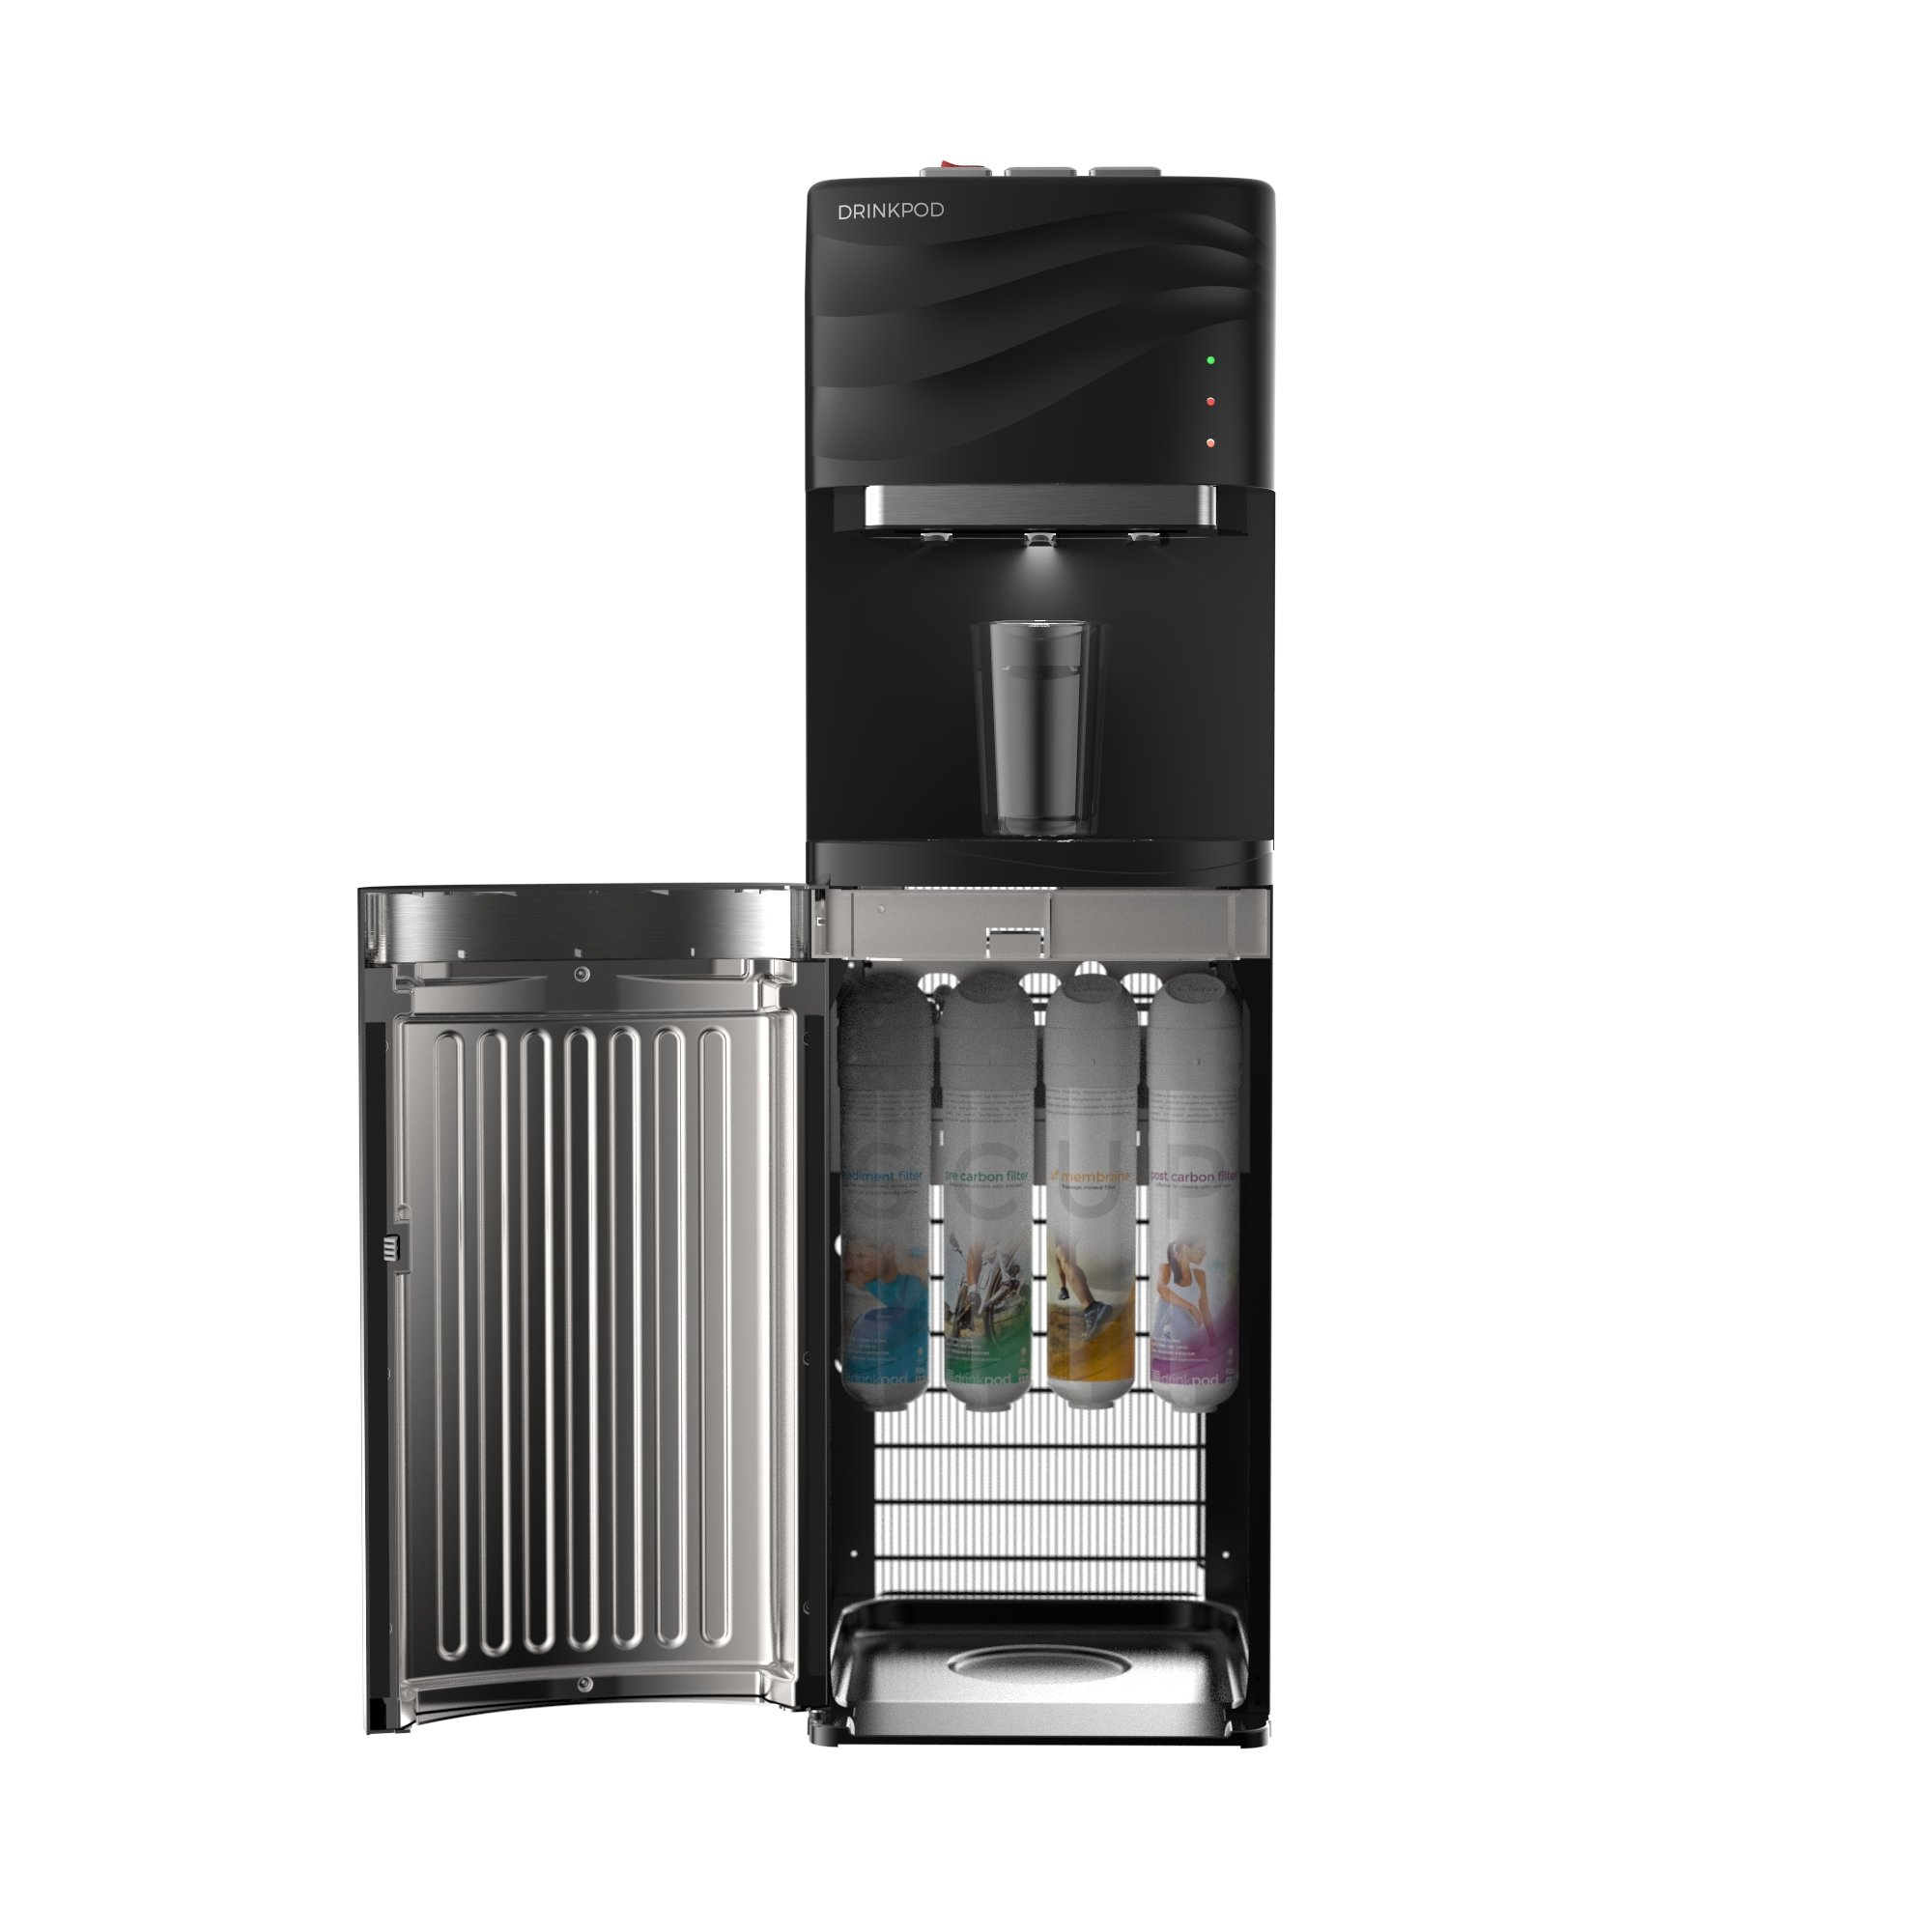 VALUE PACK: DRINKPOD USA 100 Series Bottle Less Water Cooler with 4 Filters and 3 Temp. Modes for Home or Office - UL / Energy Star Approved. Value Pack Includes an Extra Set Of Filters (8 Total) by DRINKPOD USA (Image #2)